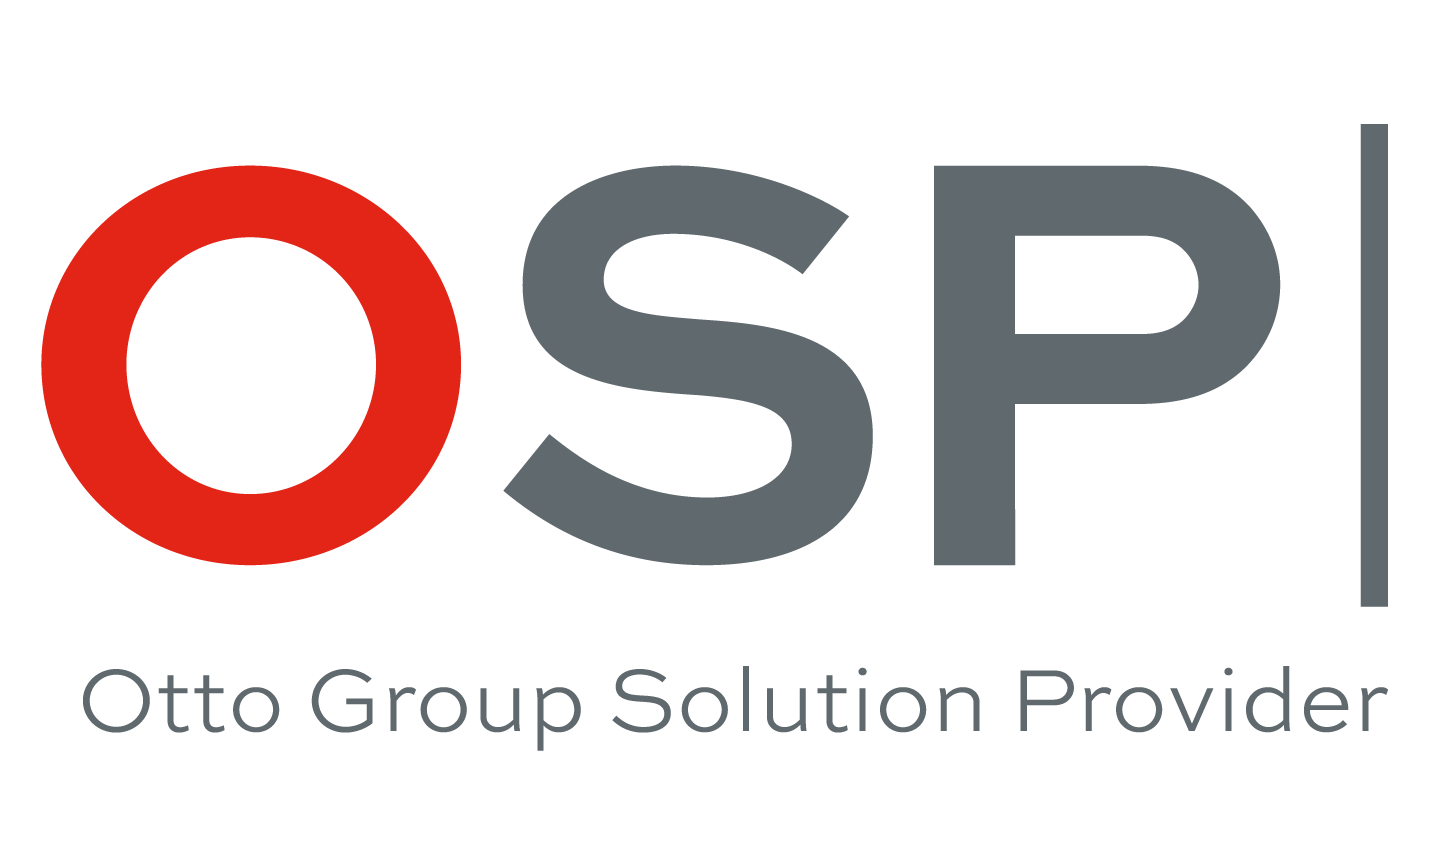 otto_group_solution_provider_(osp)_gmbh_logo